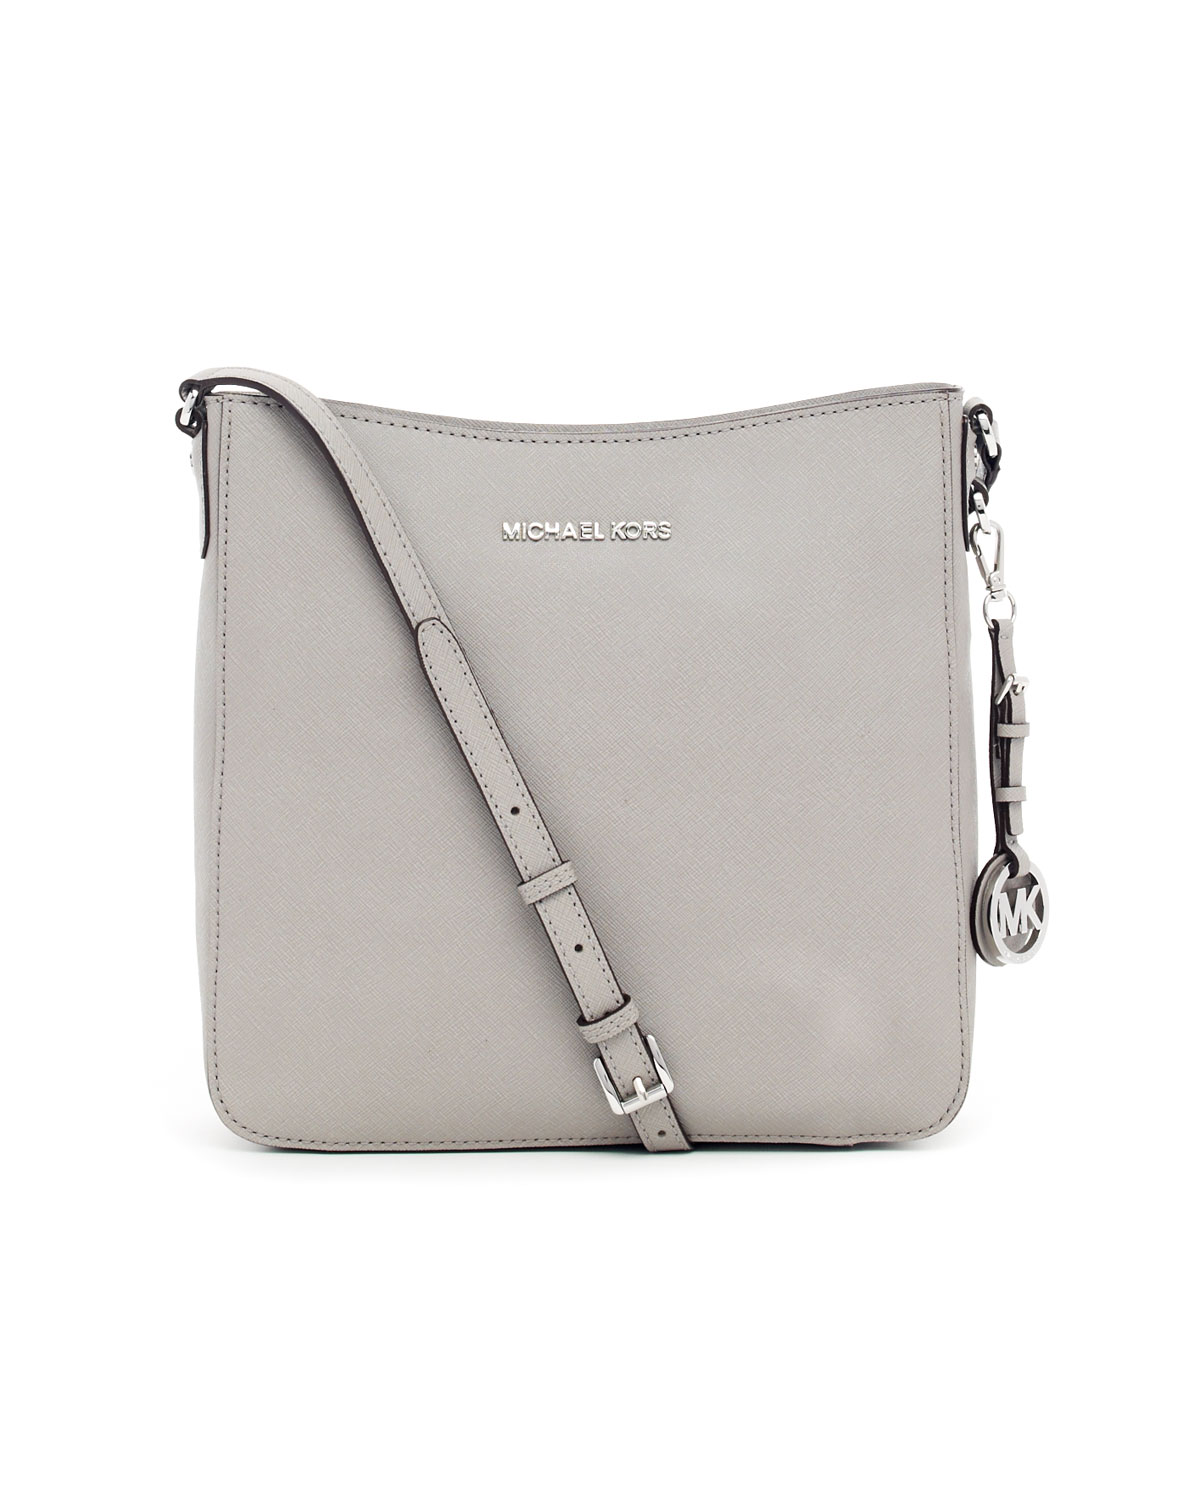 38c7fd1210 Michael Kors - Gray Jet Set Large Travel Messenger Bag - Lyst